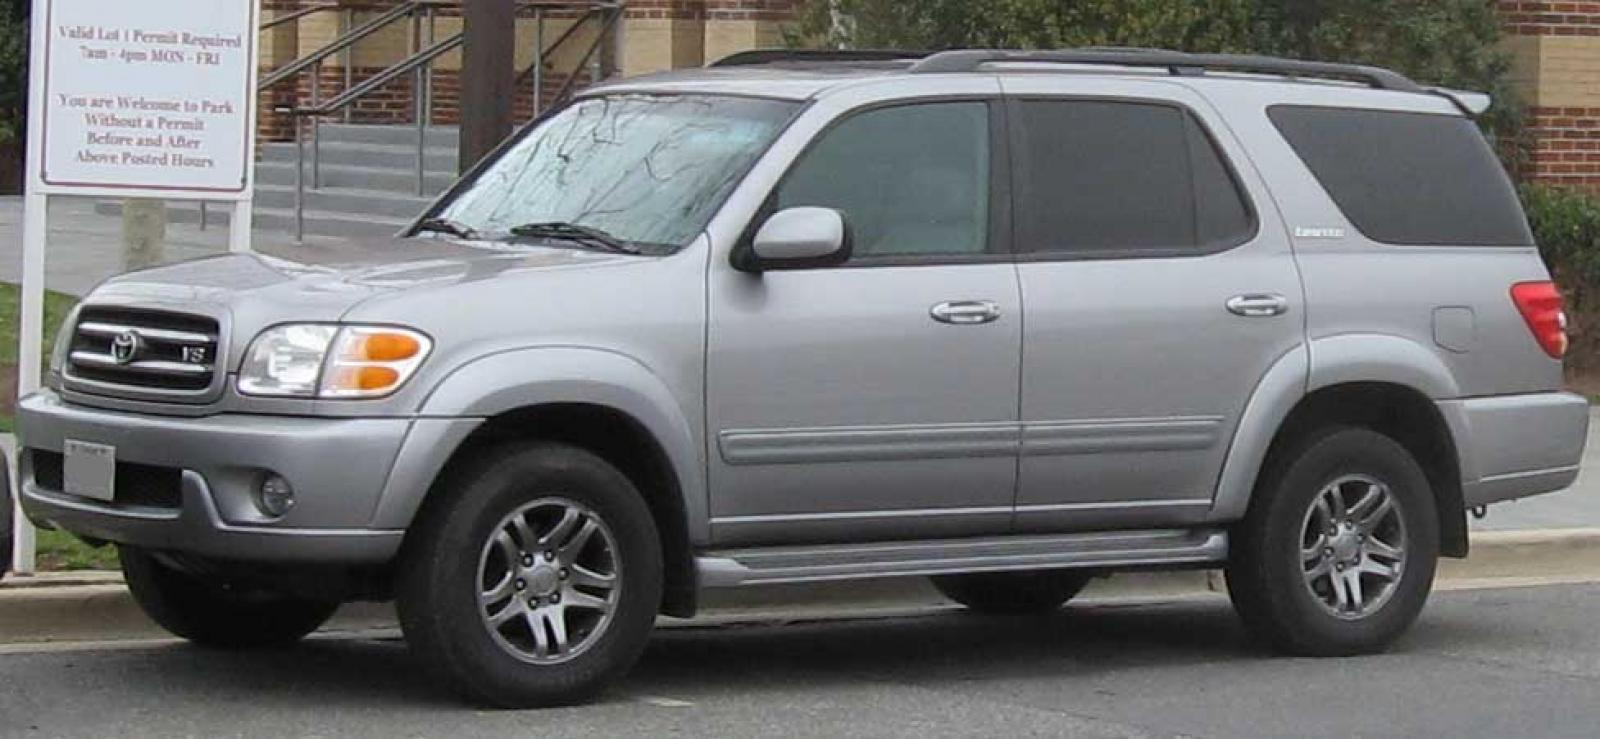 2001 toyota sequoia information and photos zombiedrive. Black Bedroom Furniture Sets. Home Design Ideas